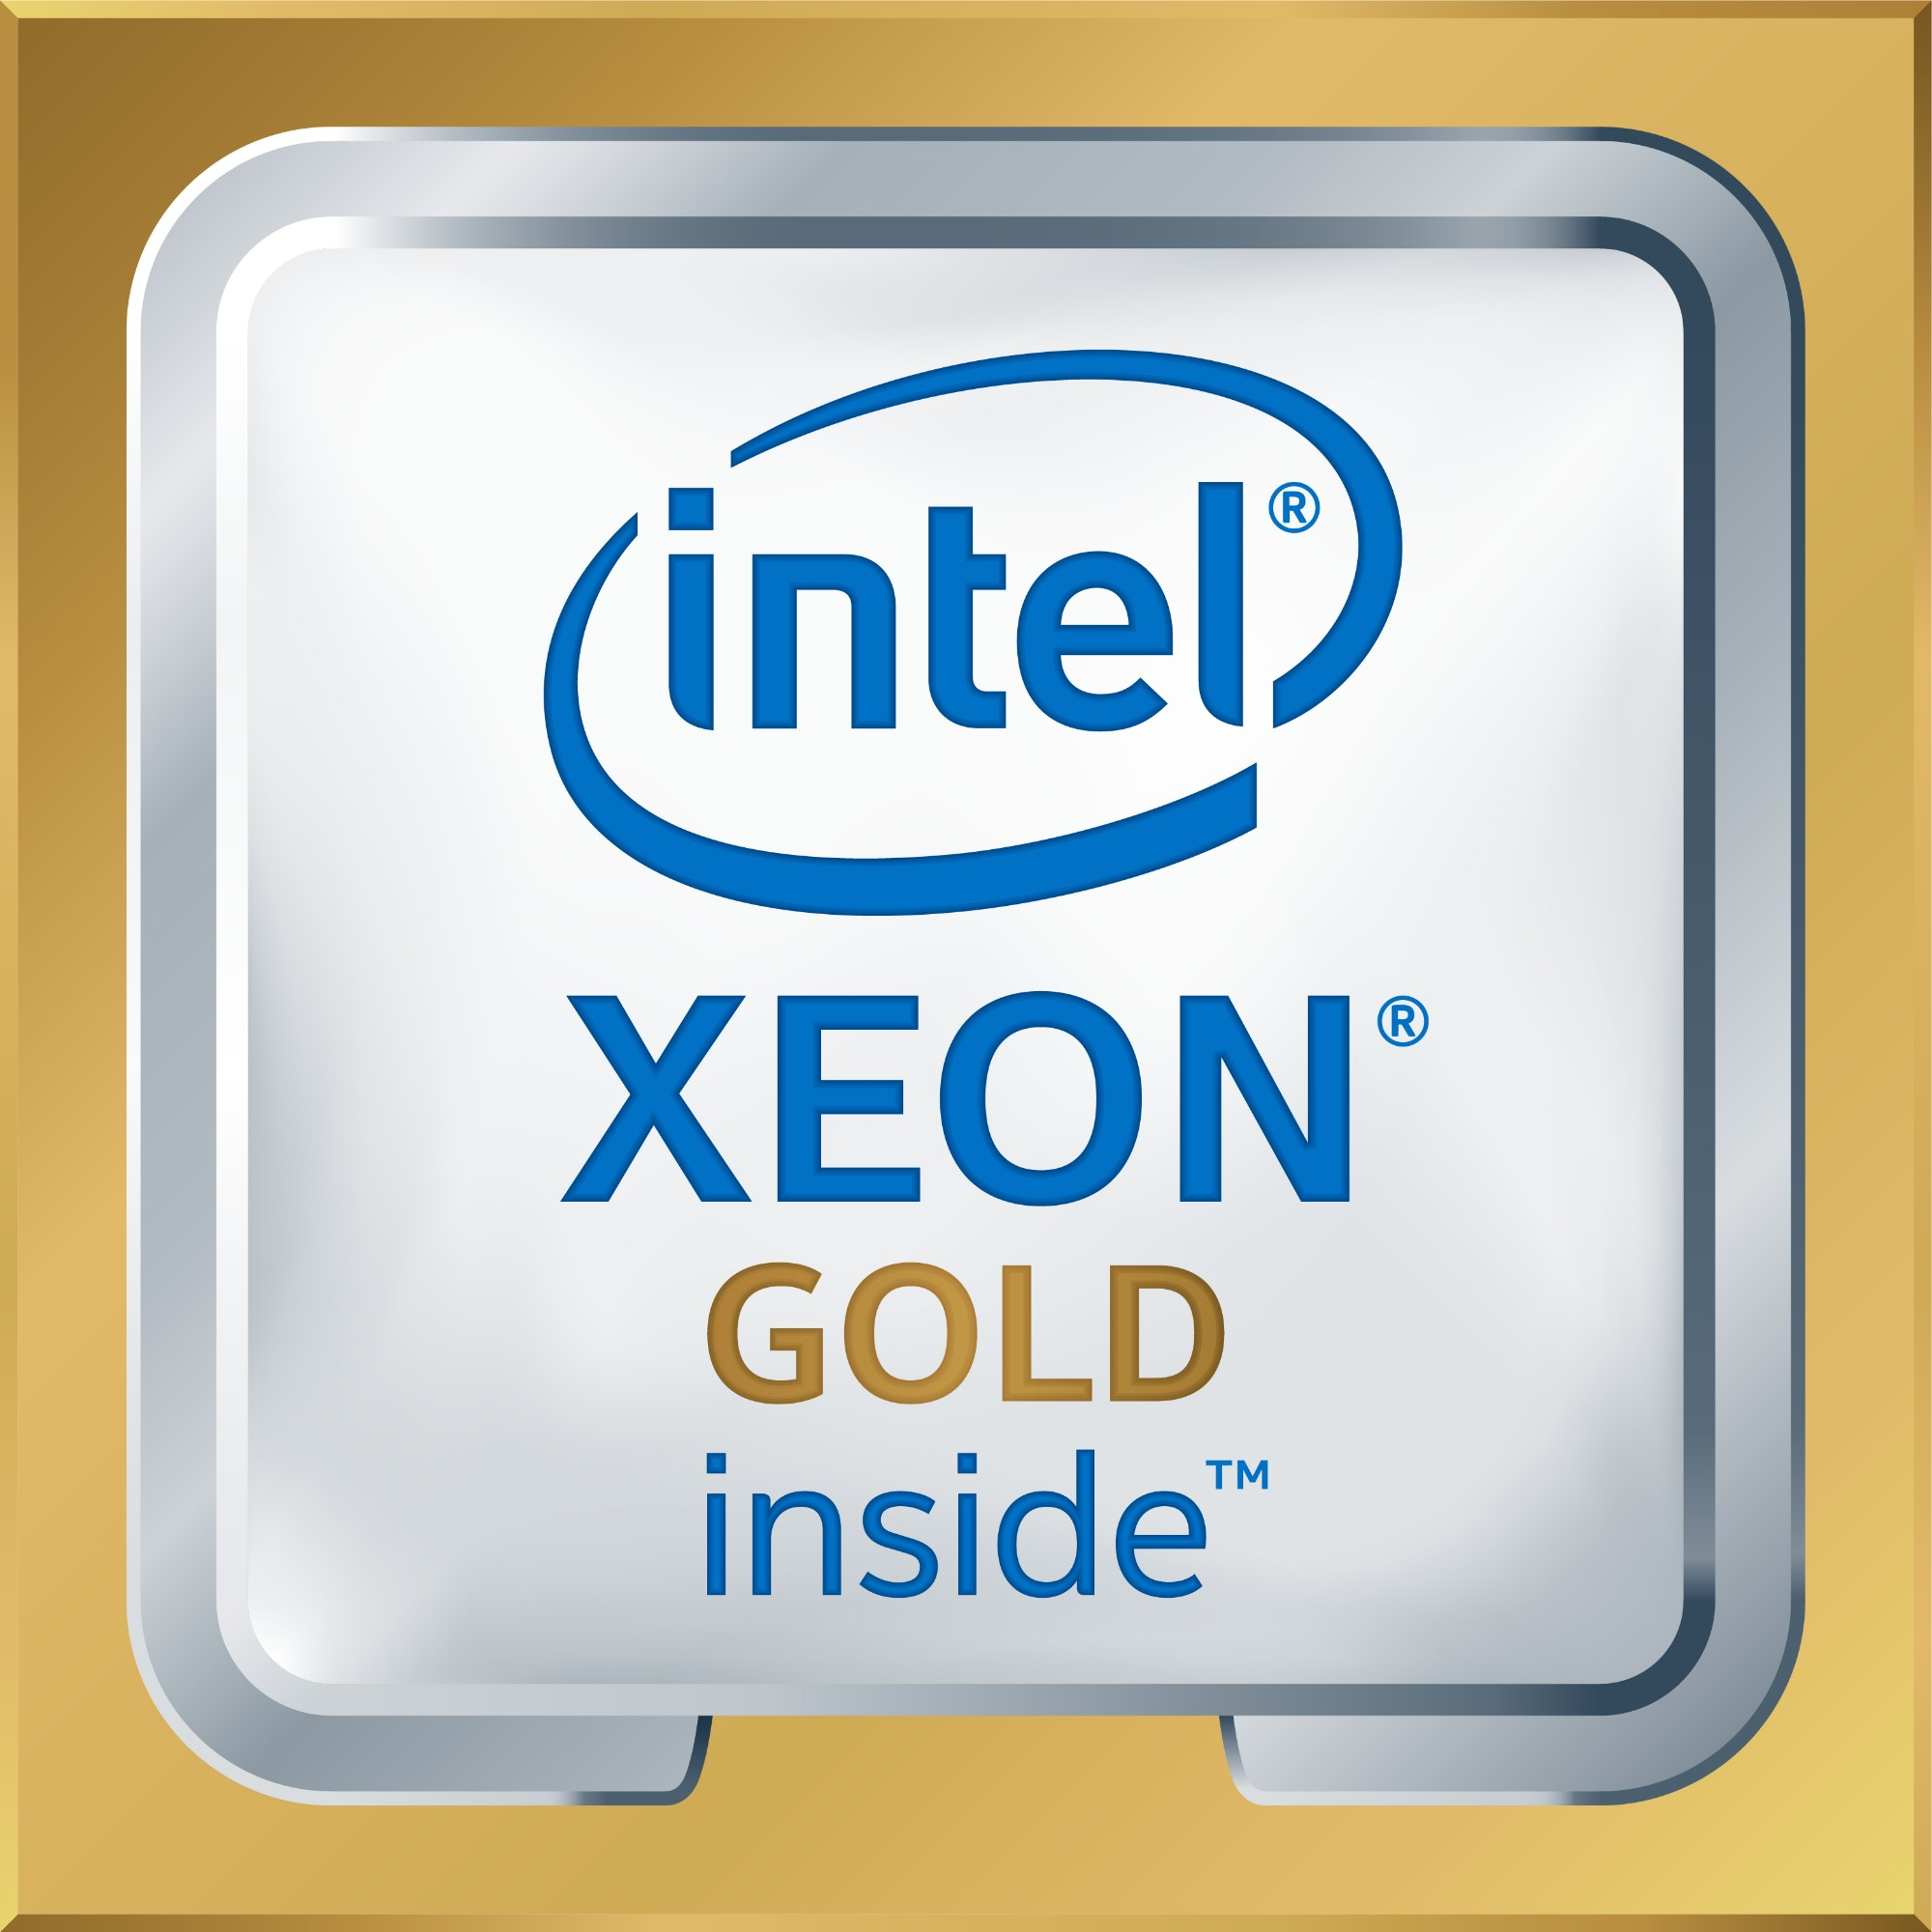 Cisco Xeon Gold 6132 Processor (19.25M Cache, 2.60 GHz) Prozessor 2,60 GHz 19,25 MB L3